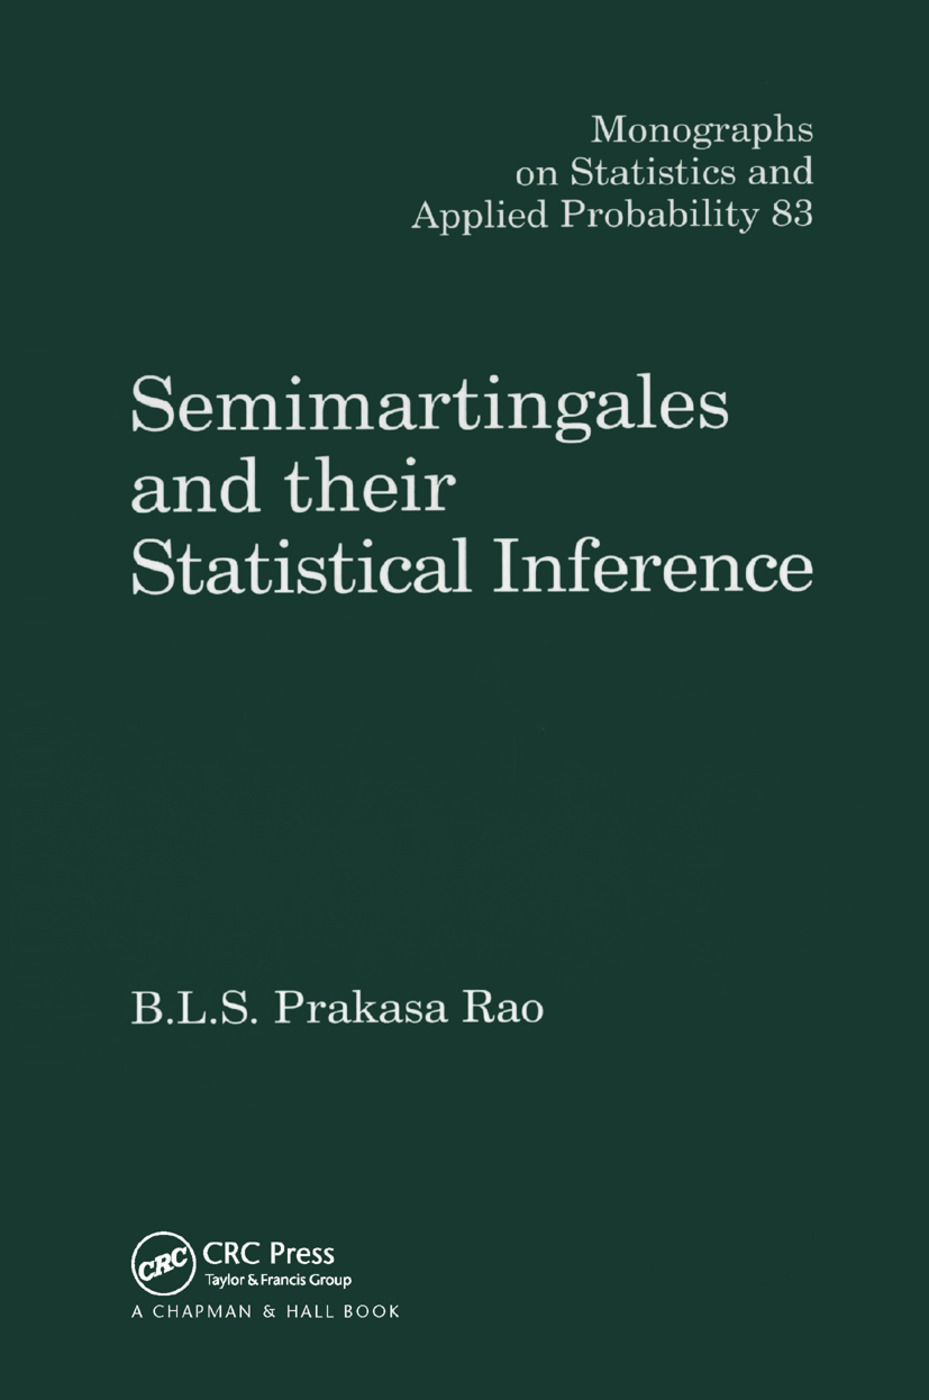 Semimartingales and their Statistical Inference: 1st Edition (Paperback) book cover